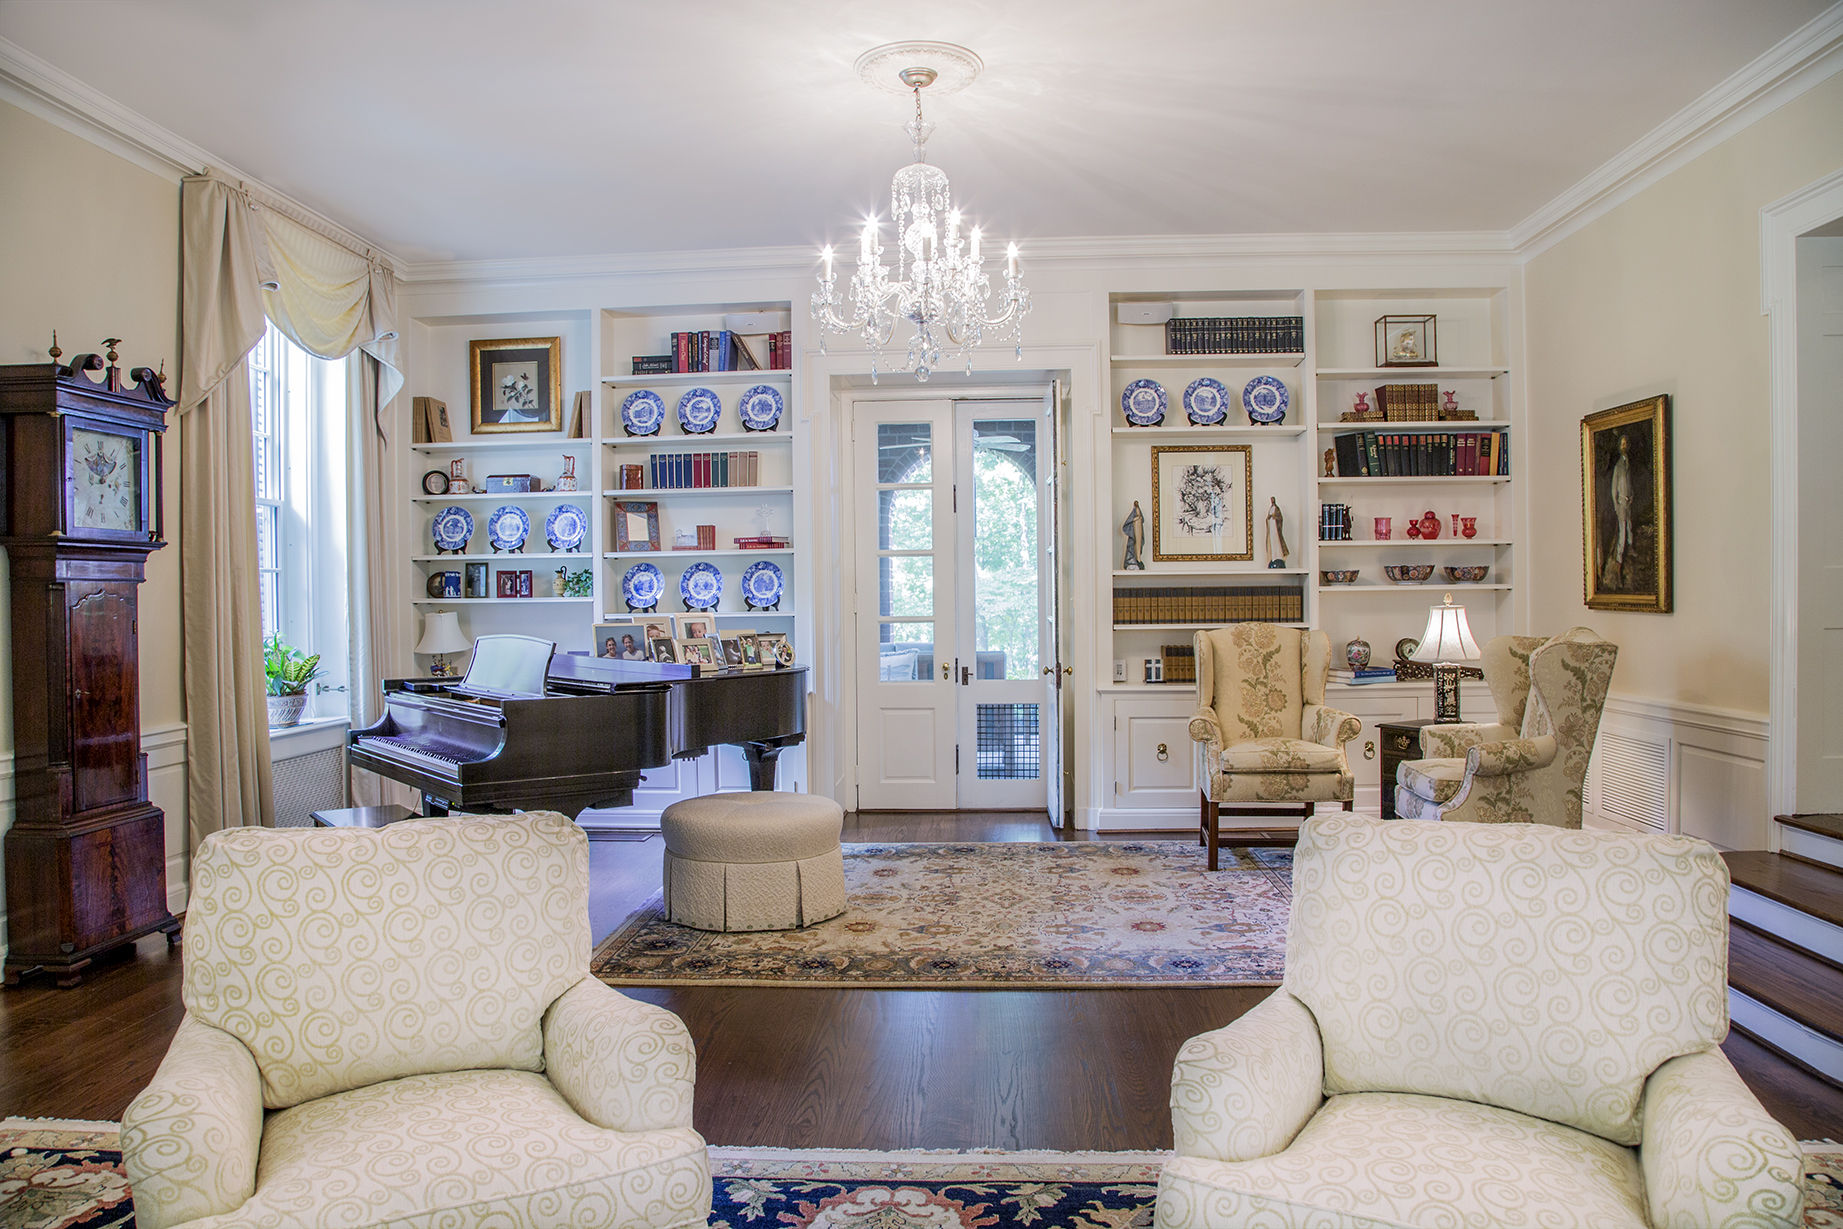 The living room's chandelier once hung in the first President's house on the Reynolda Campus, built in the 1950s.